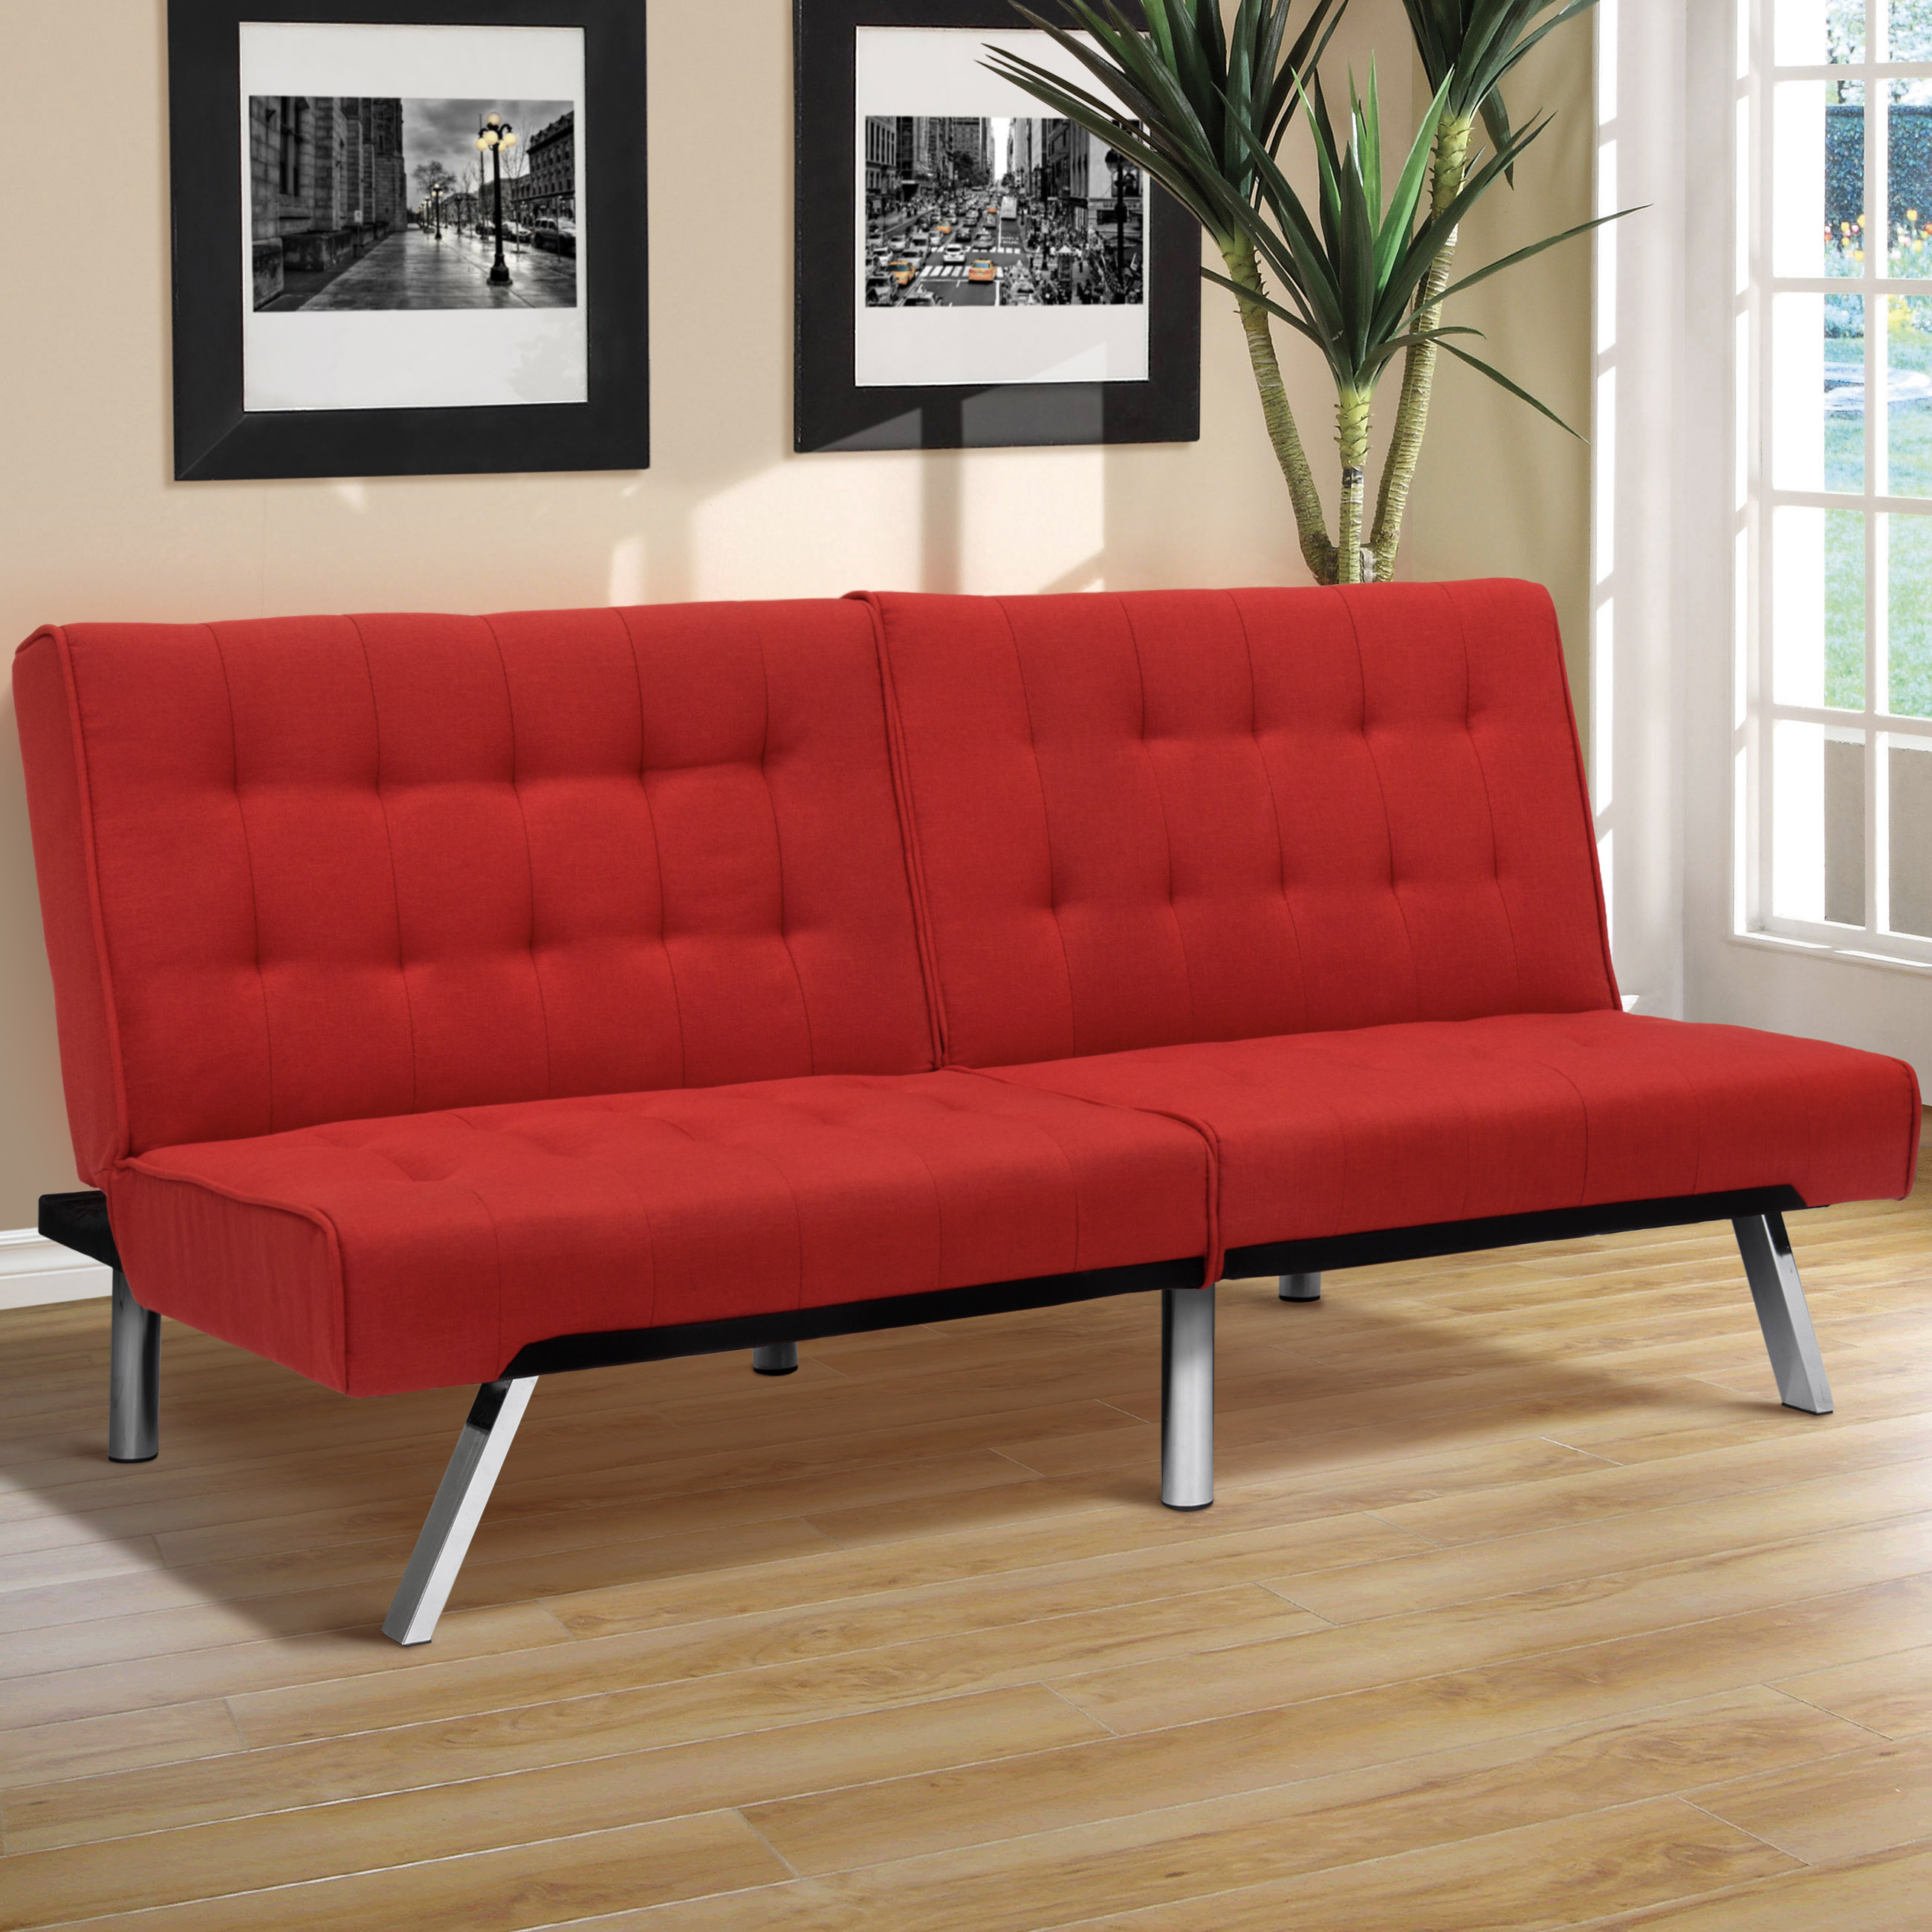 Best Choice Products Modern Linen Reclining Futon Sofa Couch Lounger Sleeper Furniture w  Chrome Legs Red by